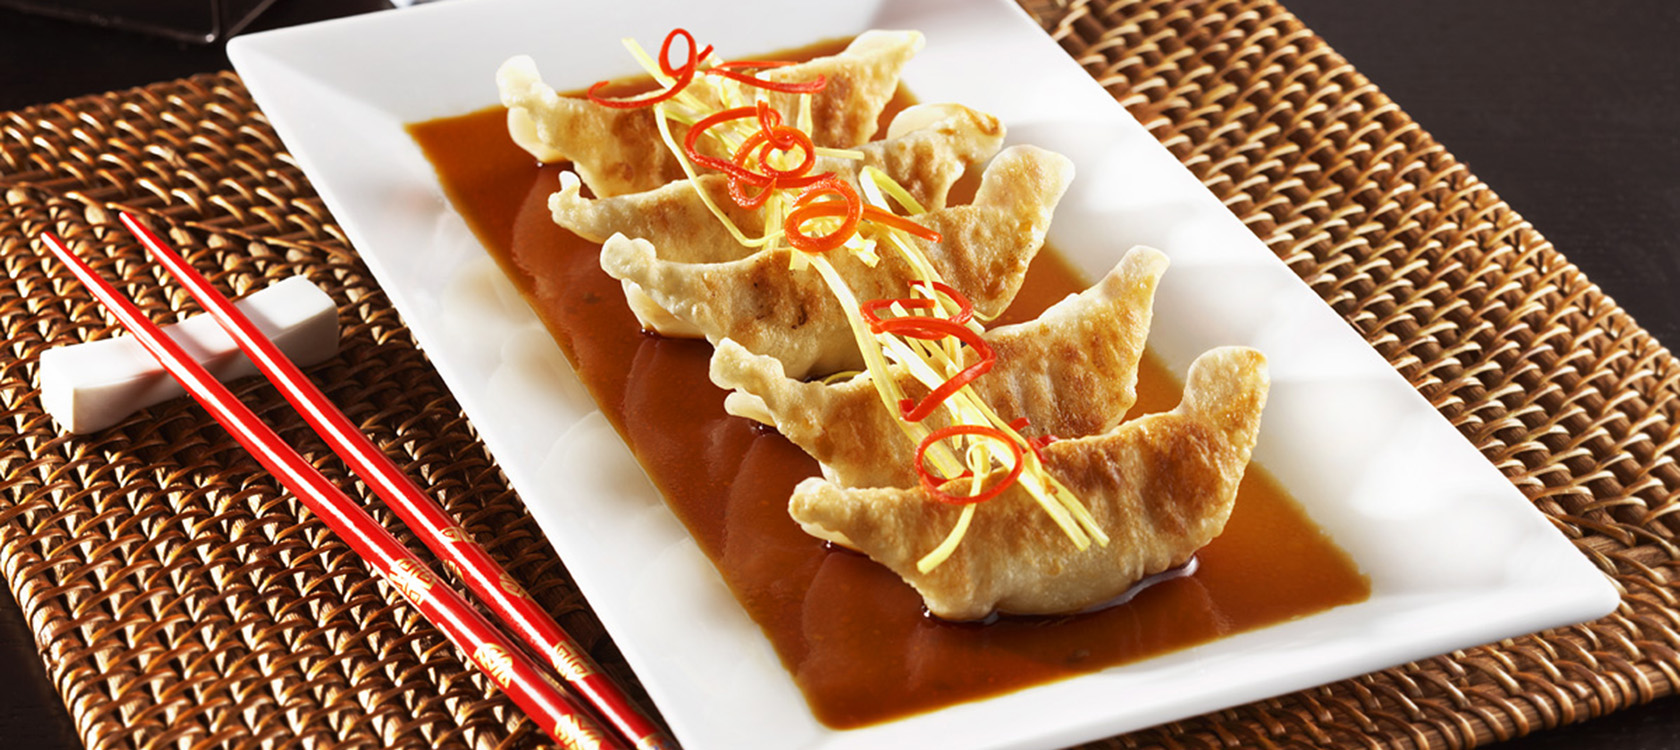 Plate of potstickers